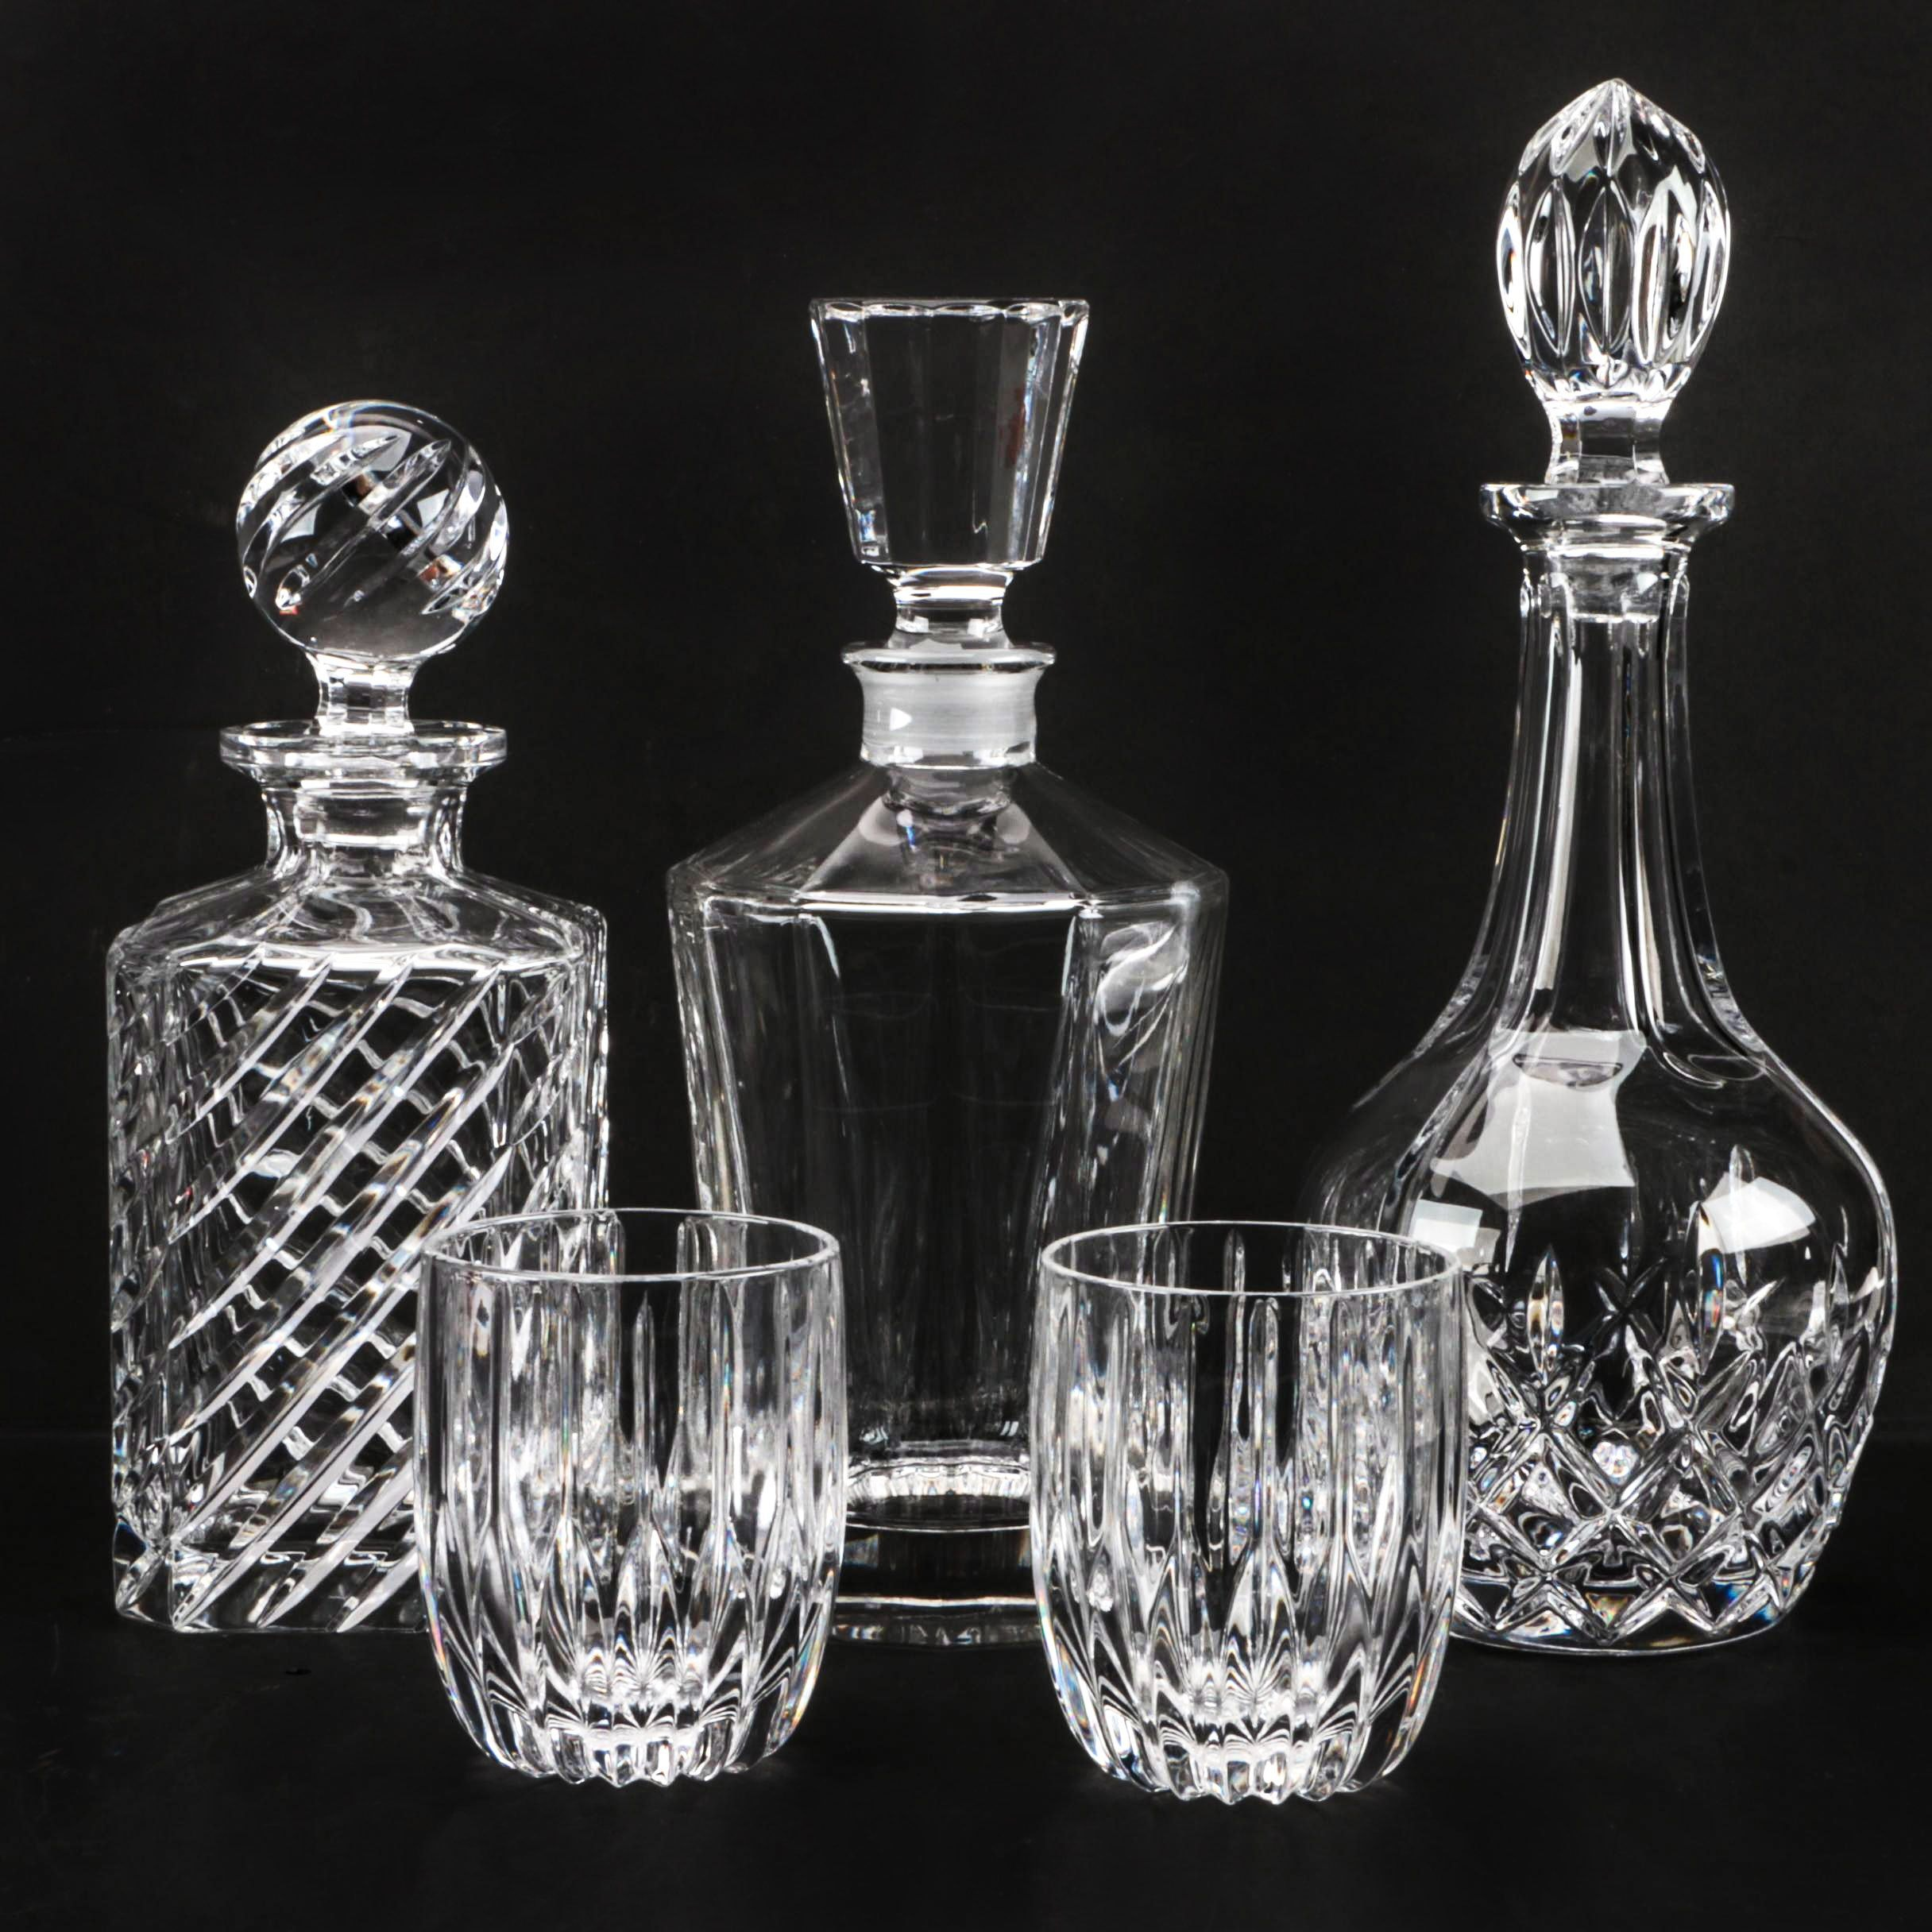 Crystal Barware Featuring Nachtmann